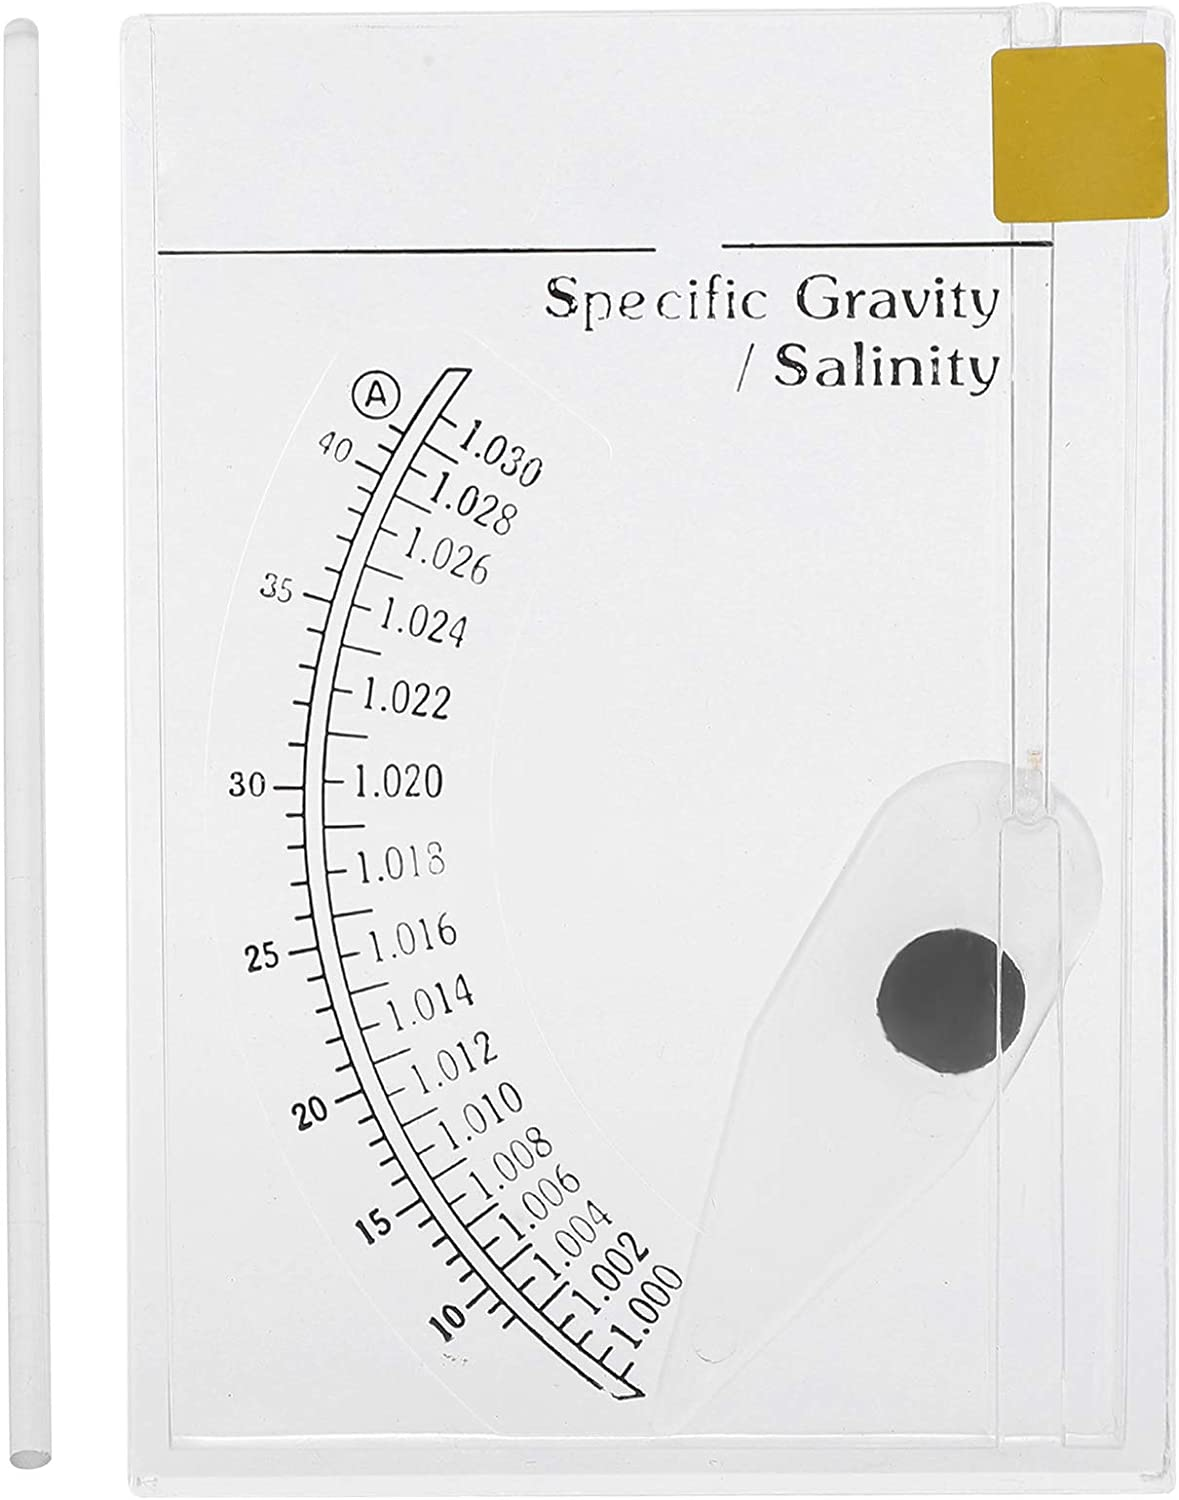 eecoo Sea Hydrometer Large discharge sale Salinity Import Specific Saltwater Gravity Co Test